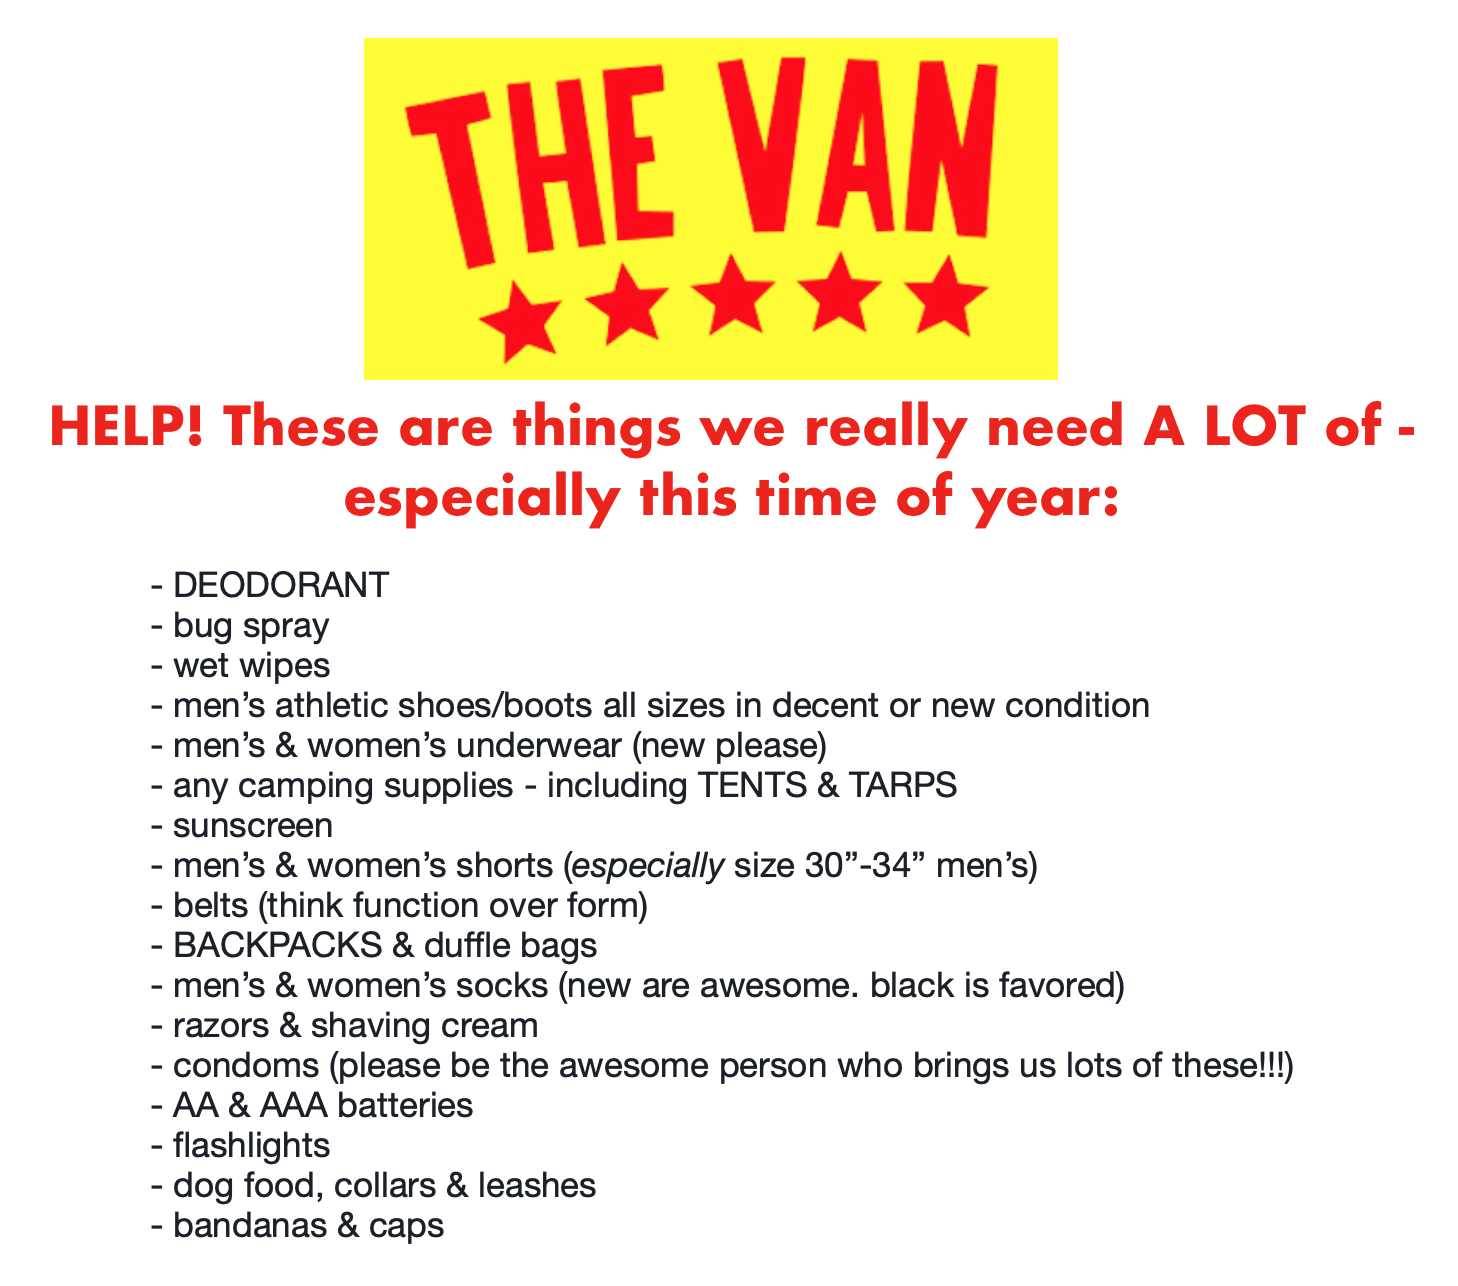 We're really short on (or completely out of) these items! If you'd like to help us get stocked up on them, you'd be my hero!  Thanks so much,  Emily Gaiser April 30, 2019